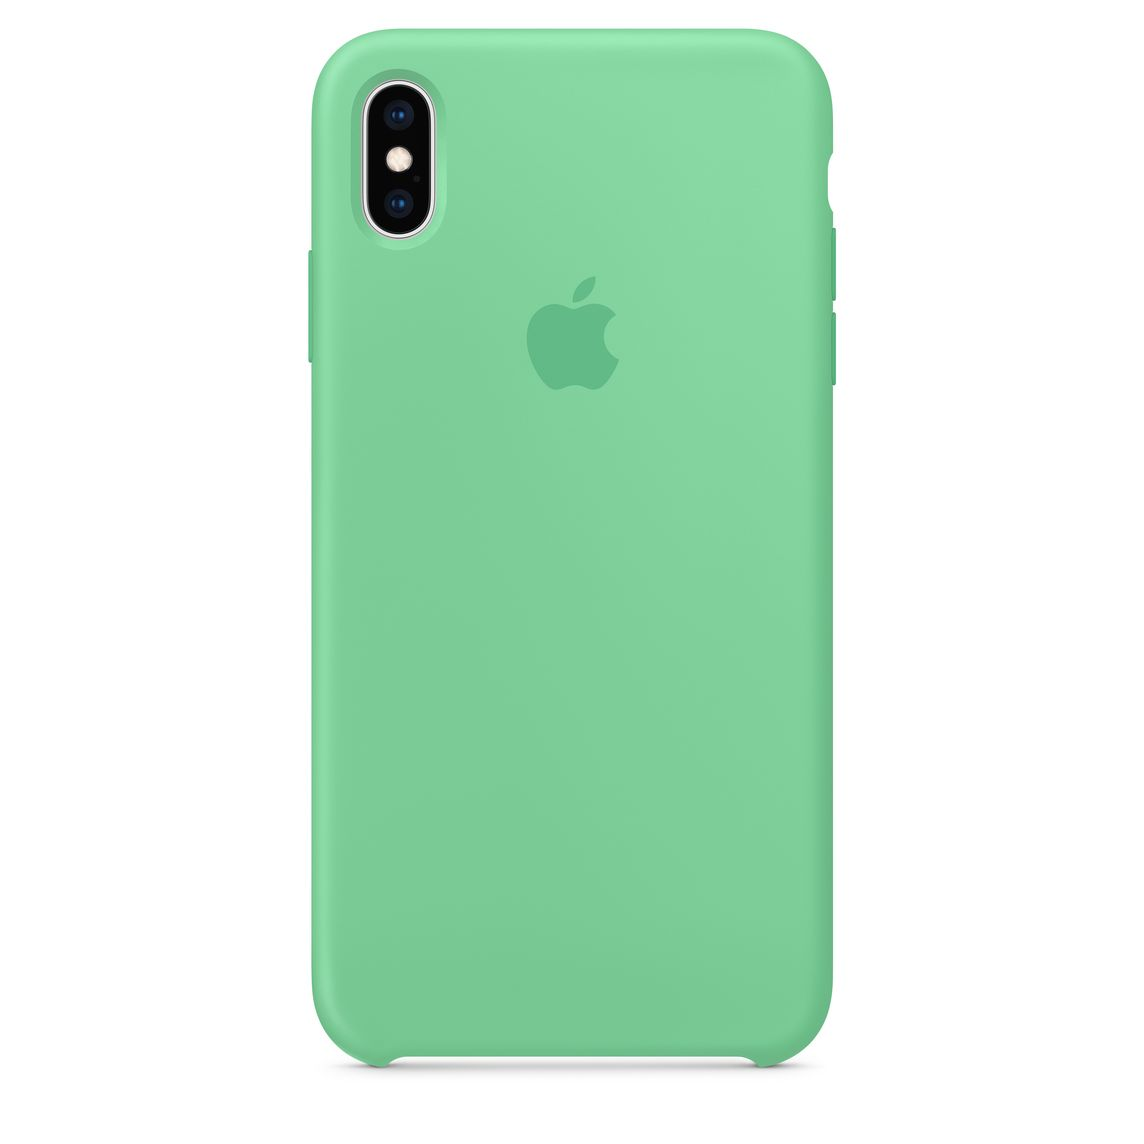 official photos fe622 7673e iPhone XS Max Silicone Case - Spearmint